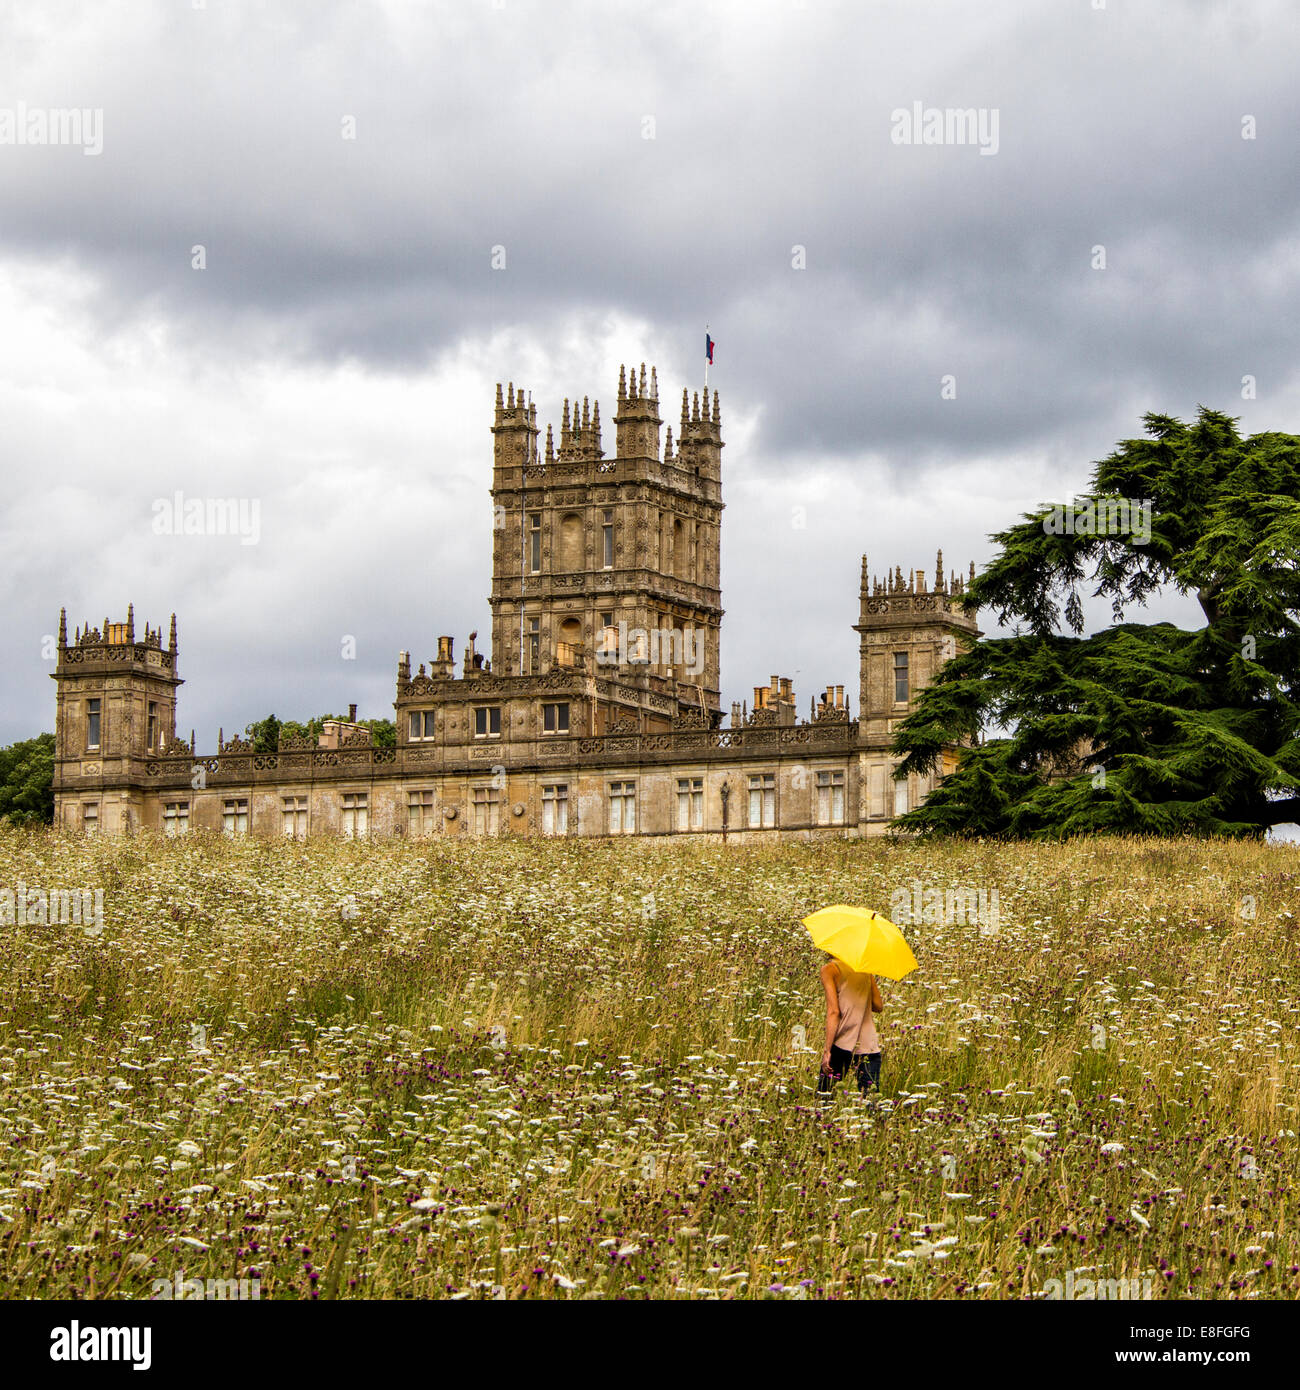 UK, Hampshire, Highclere Castle, Woman with yellow umbrella on meadow - Stock Image